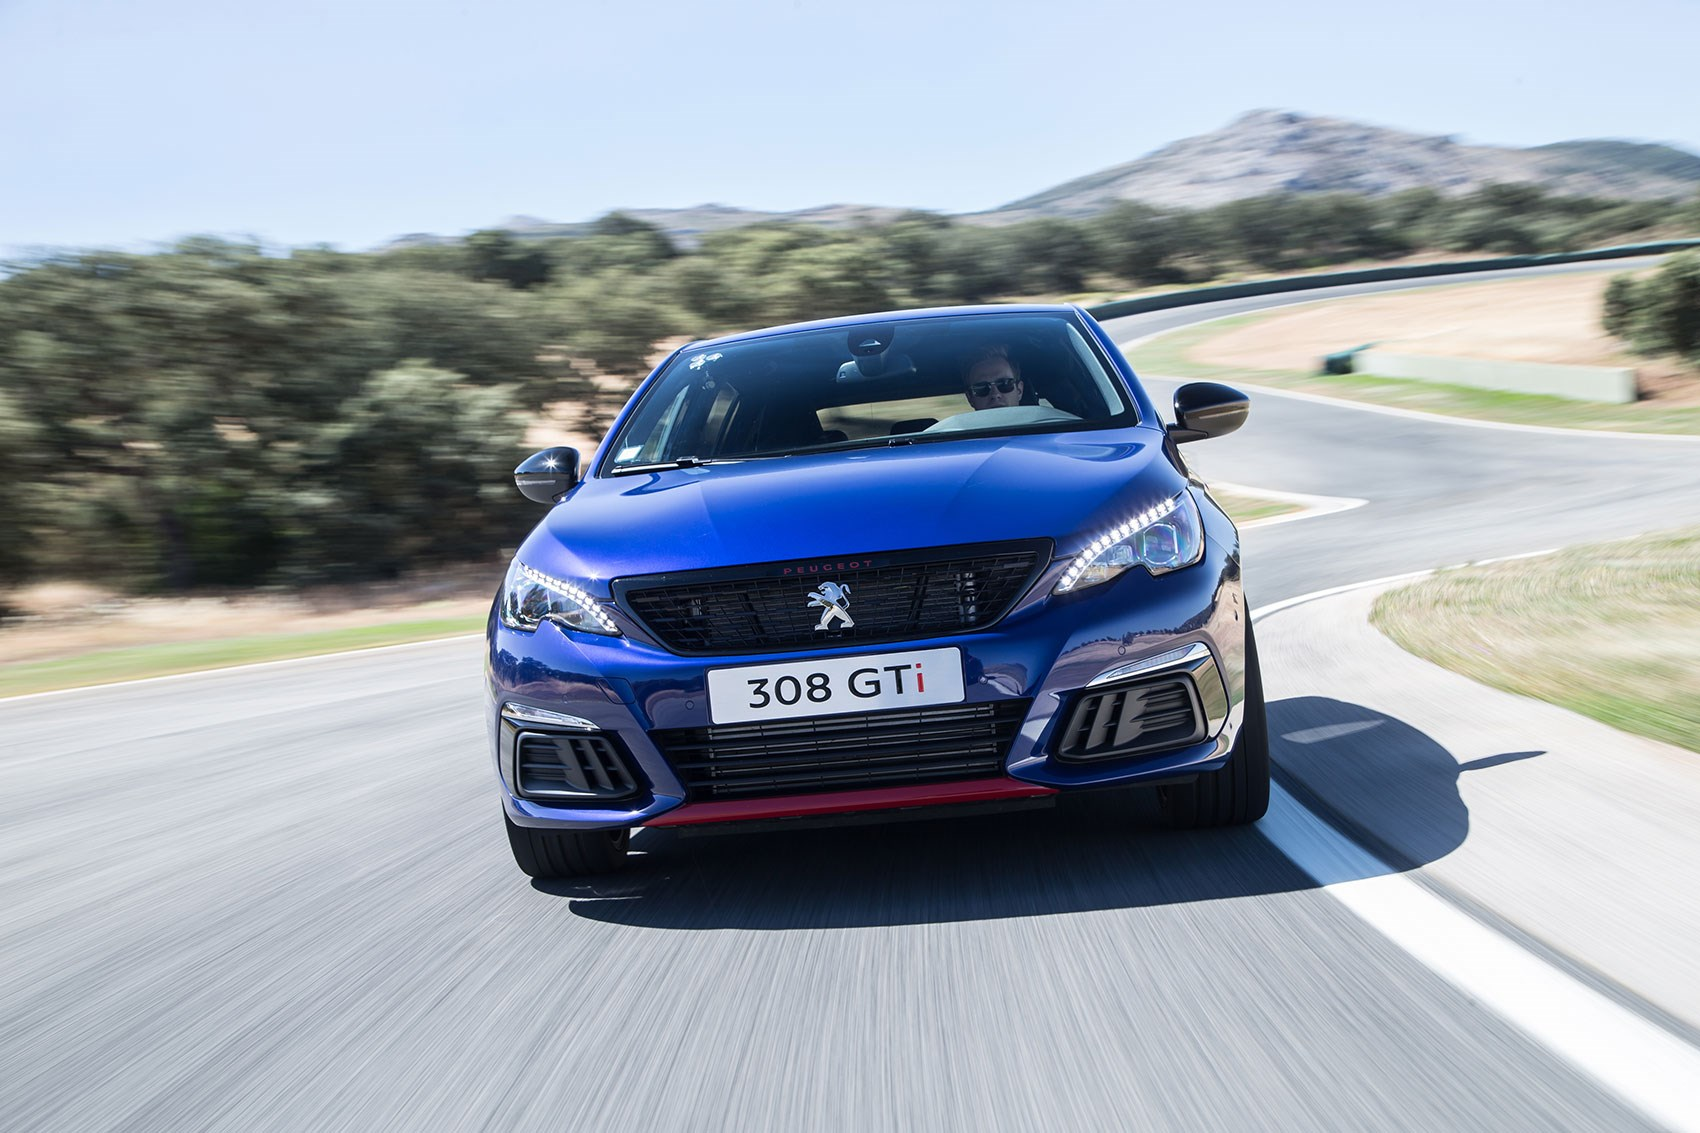 peugeot 308 gti facelift 2017 review by car magazine. Black Bedroom Furniture Sets. Home Design Ideas